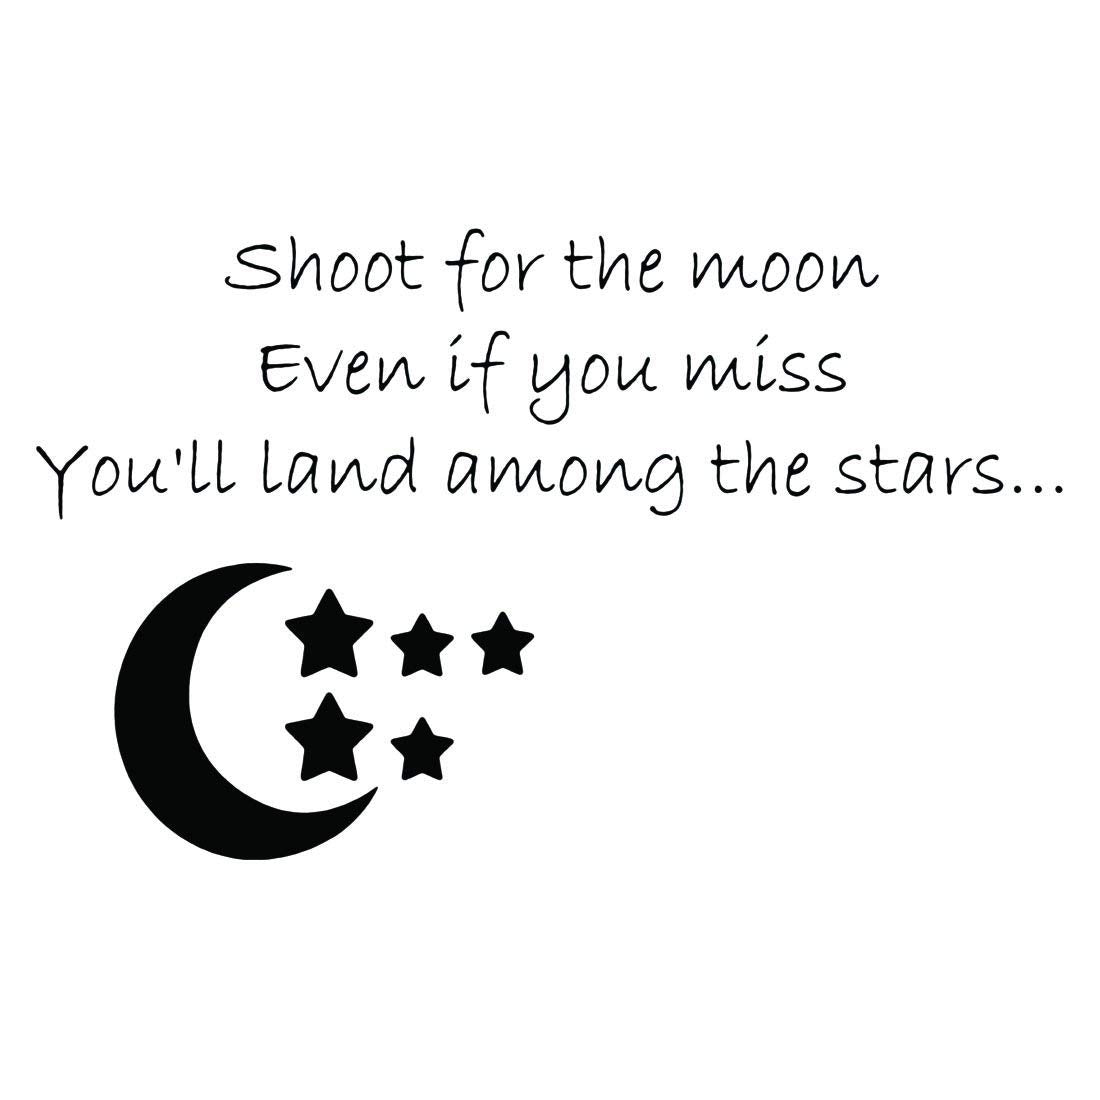 VWAQ Shoot For The Moon Even If You Miss You'll Land Among The Stars Vinyl Wall Decal -18096 - VWAQ Vinyl Wall Art Quotes and Prints